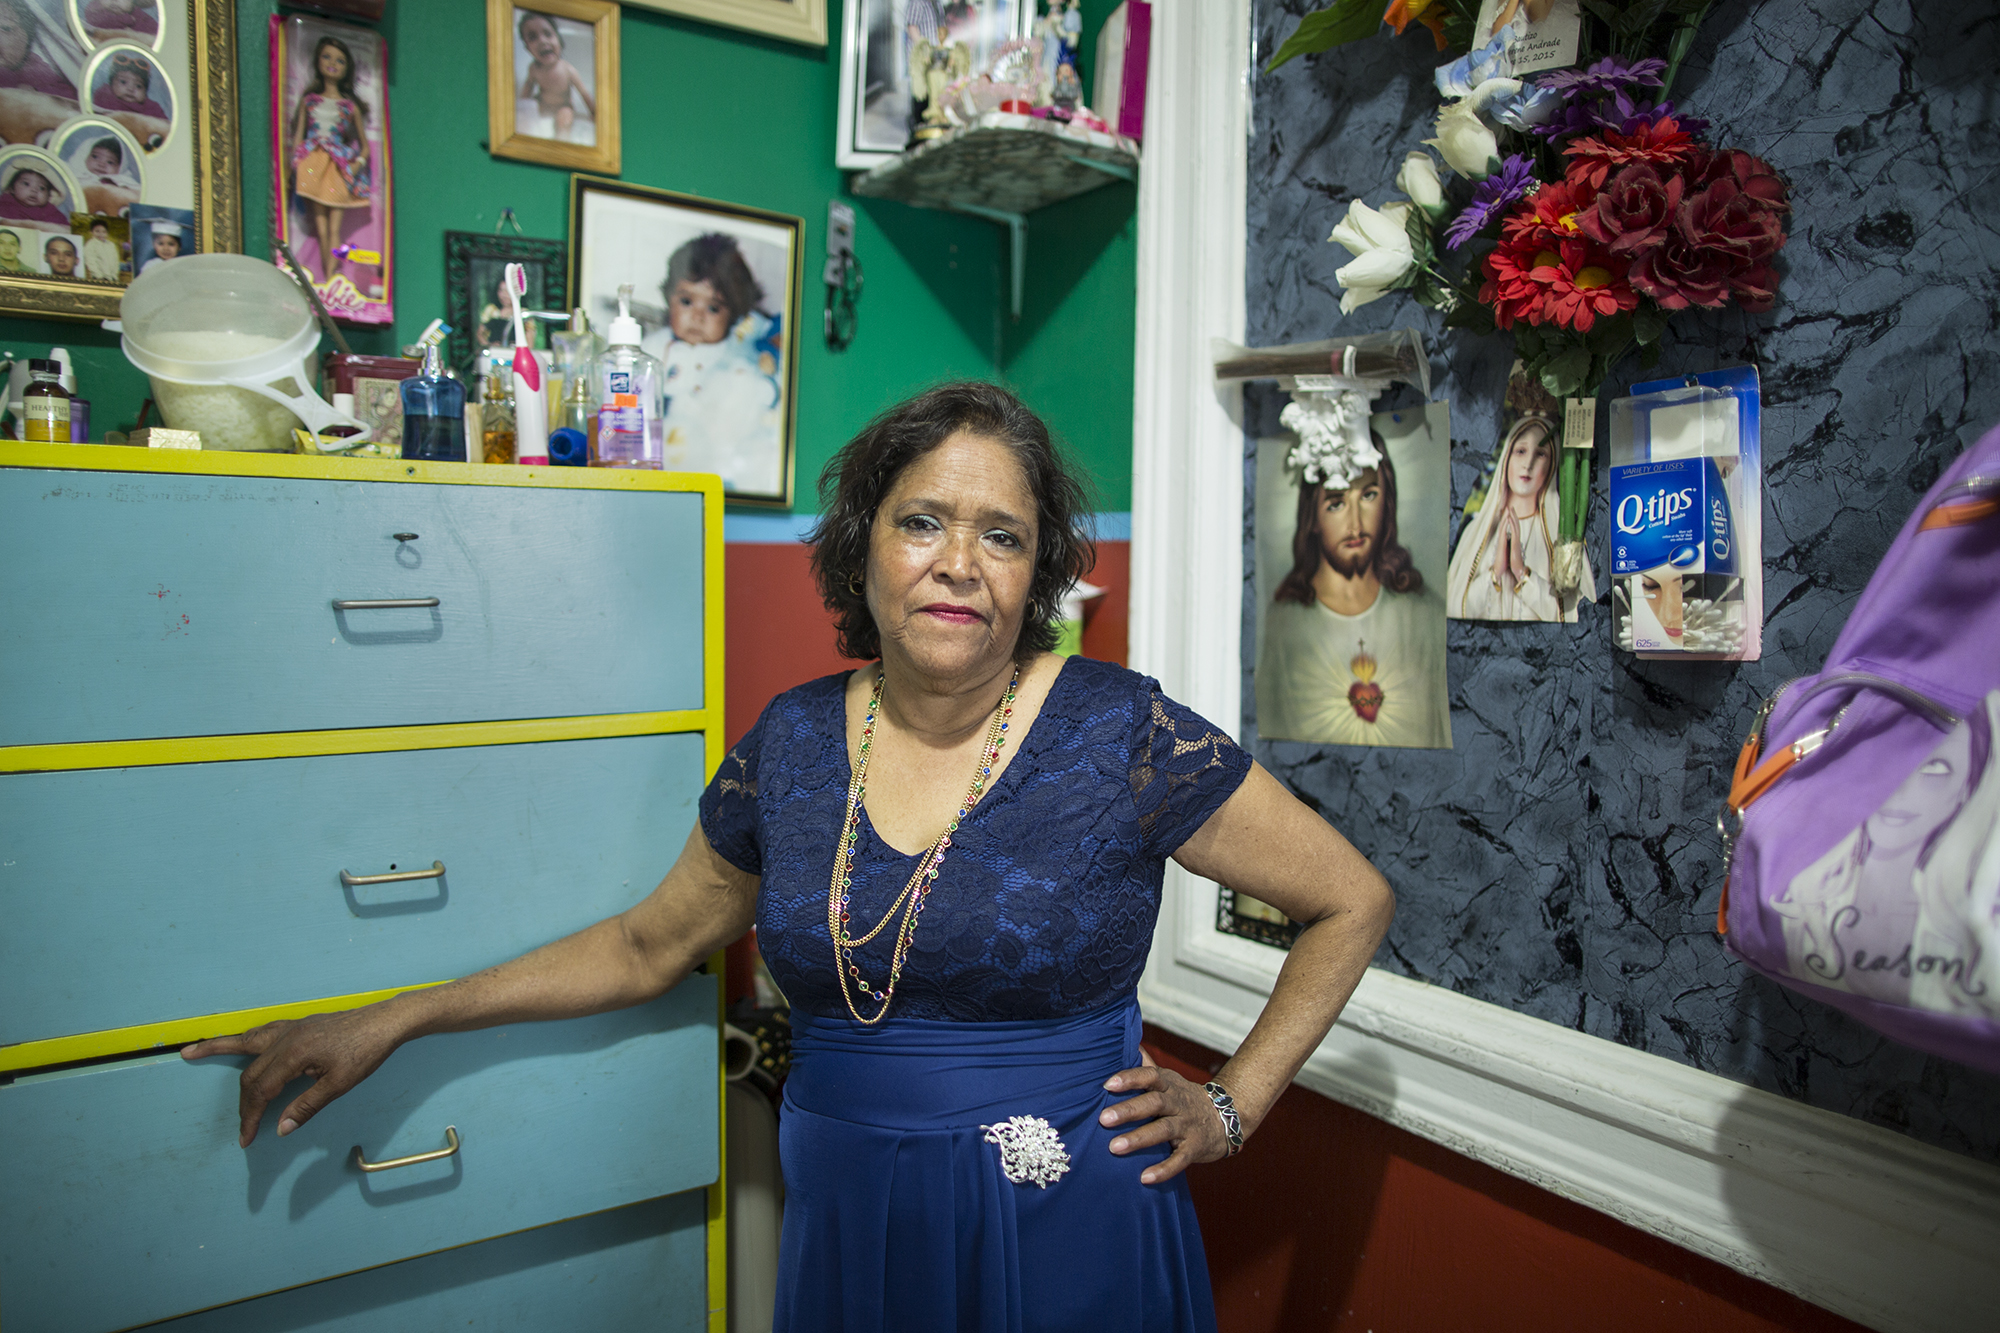 Irma Verduzco is from Morellia, Michoacán, México. She came to New York 26 years ago, having crossed the border with one of her two children. Actually, she has three jobs: cleaning houses, babysitting, and picking up plastic bottles out on the streets. She lives in Sunset Park, Brooklyn.